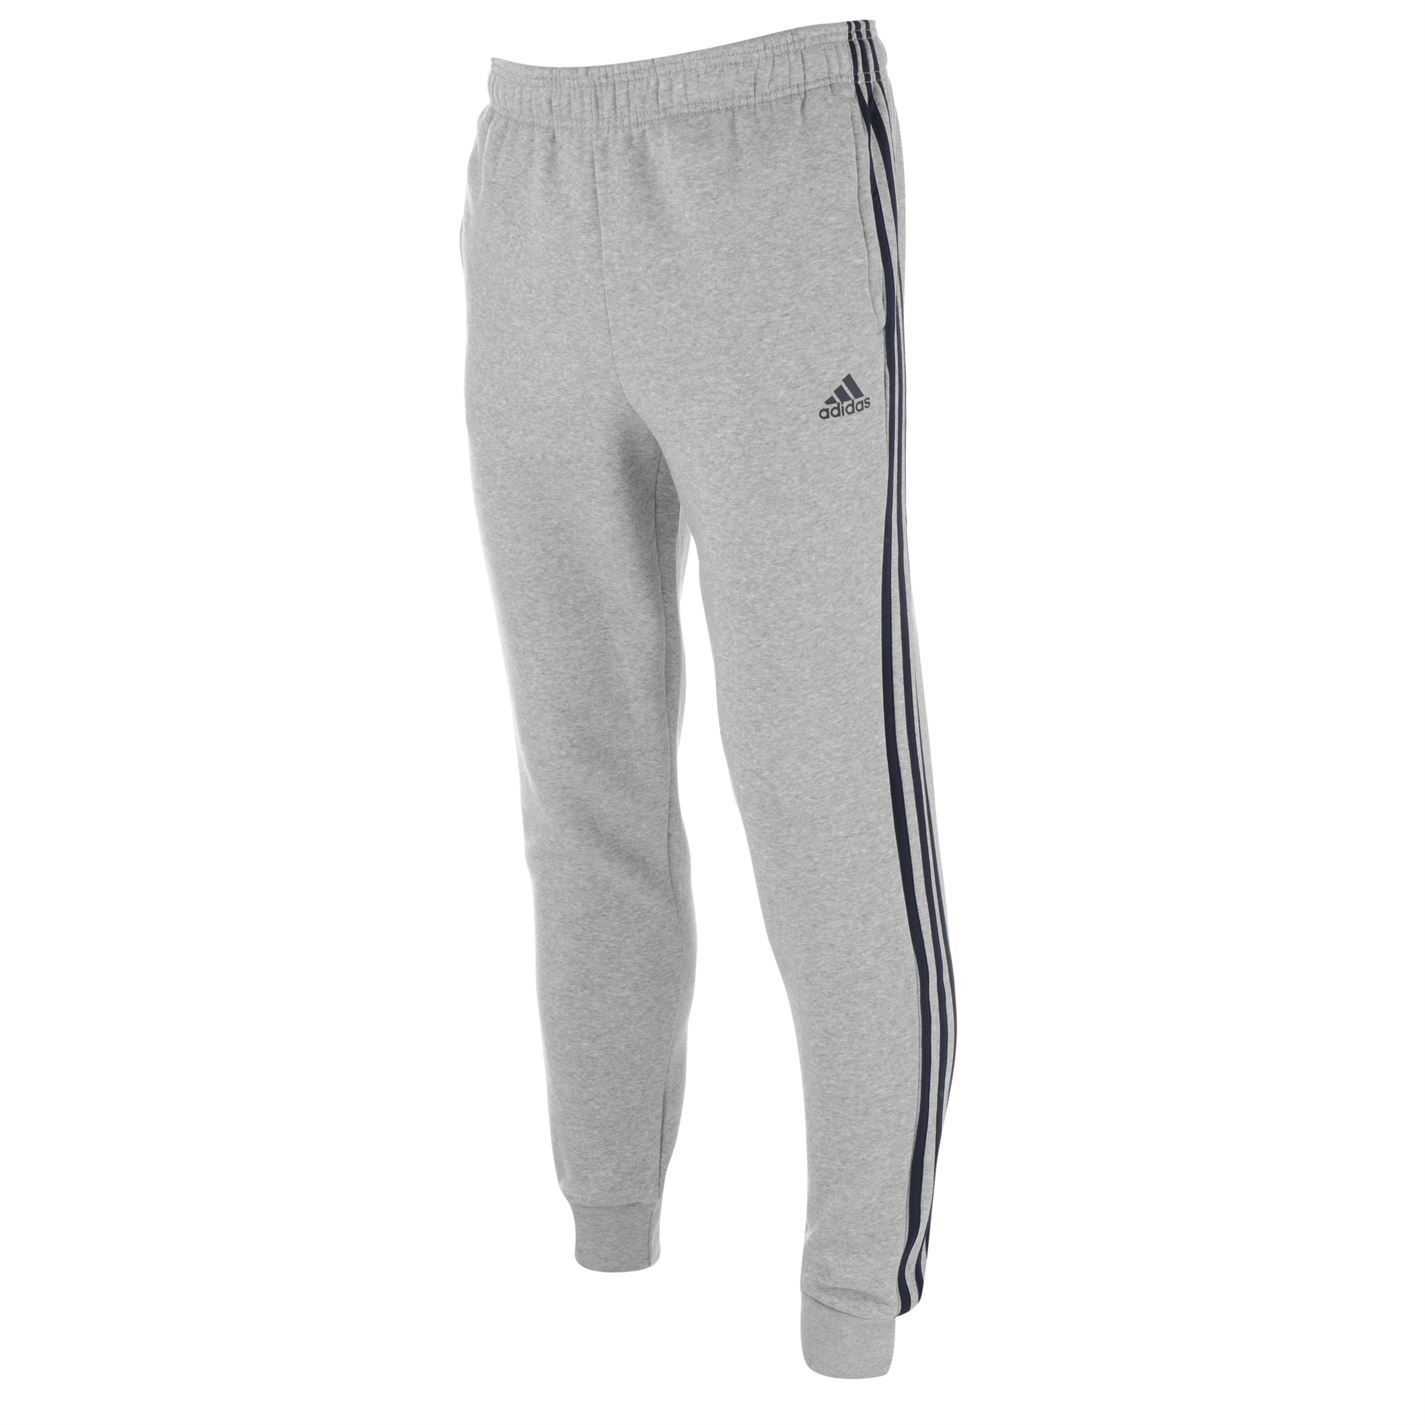 Add a stylishly sporty look to your wardrobe with these adidas 3 Stripe  Fleece Pants - designed with a jersey construction with a soft fleece  lining to ... 98c8a3836faf